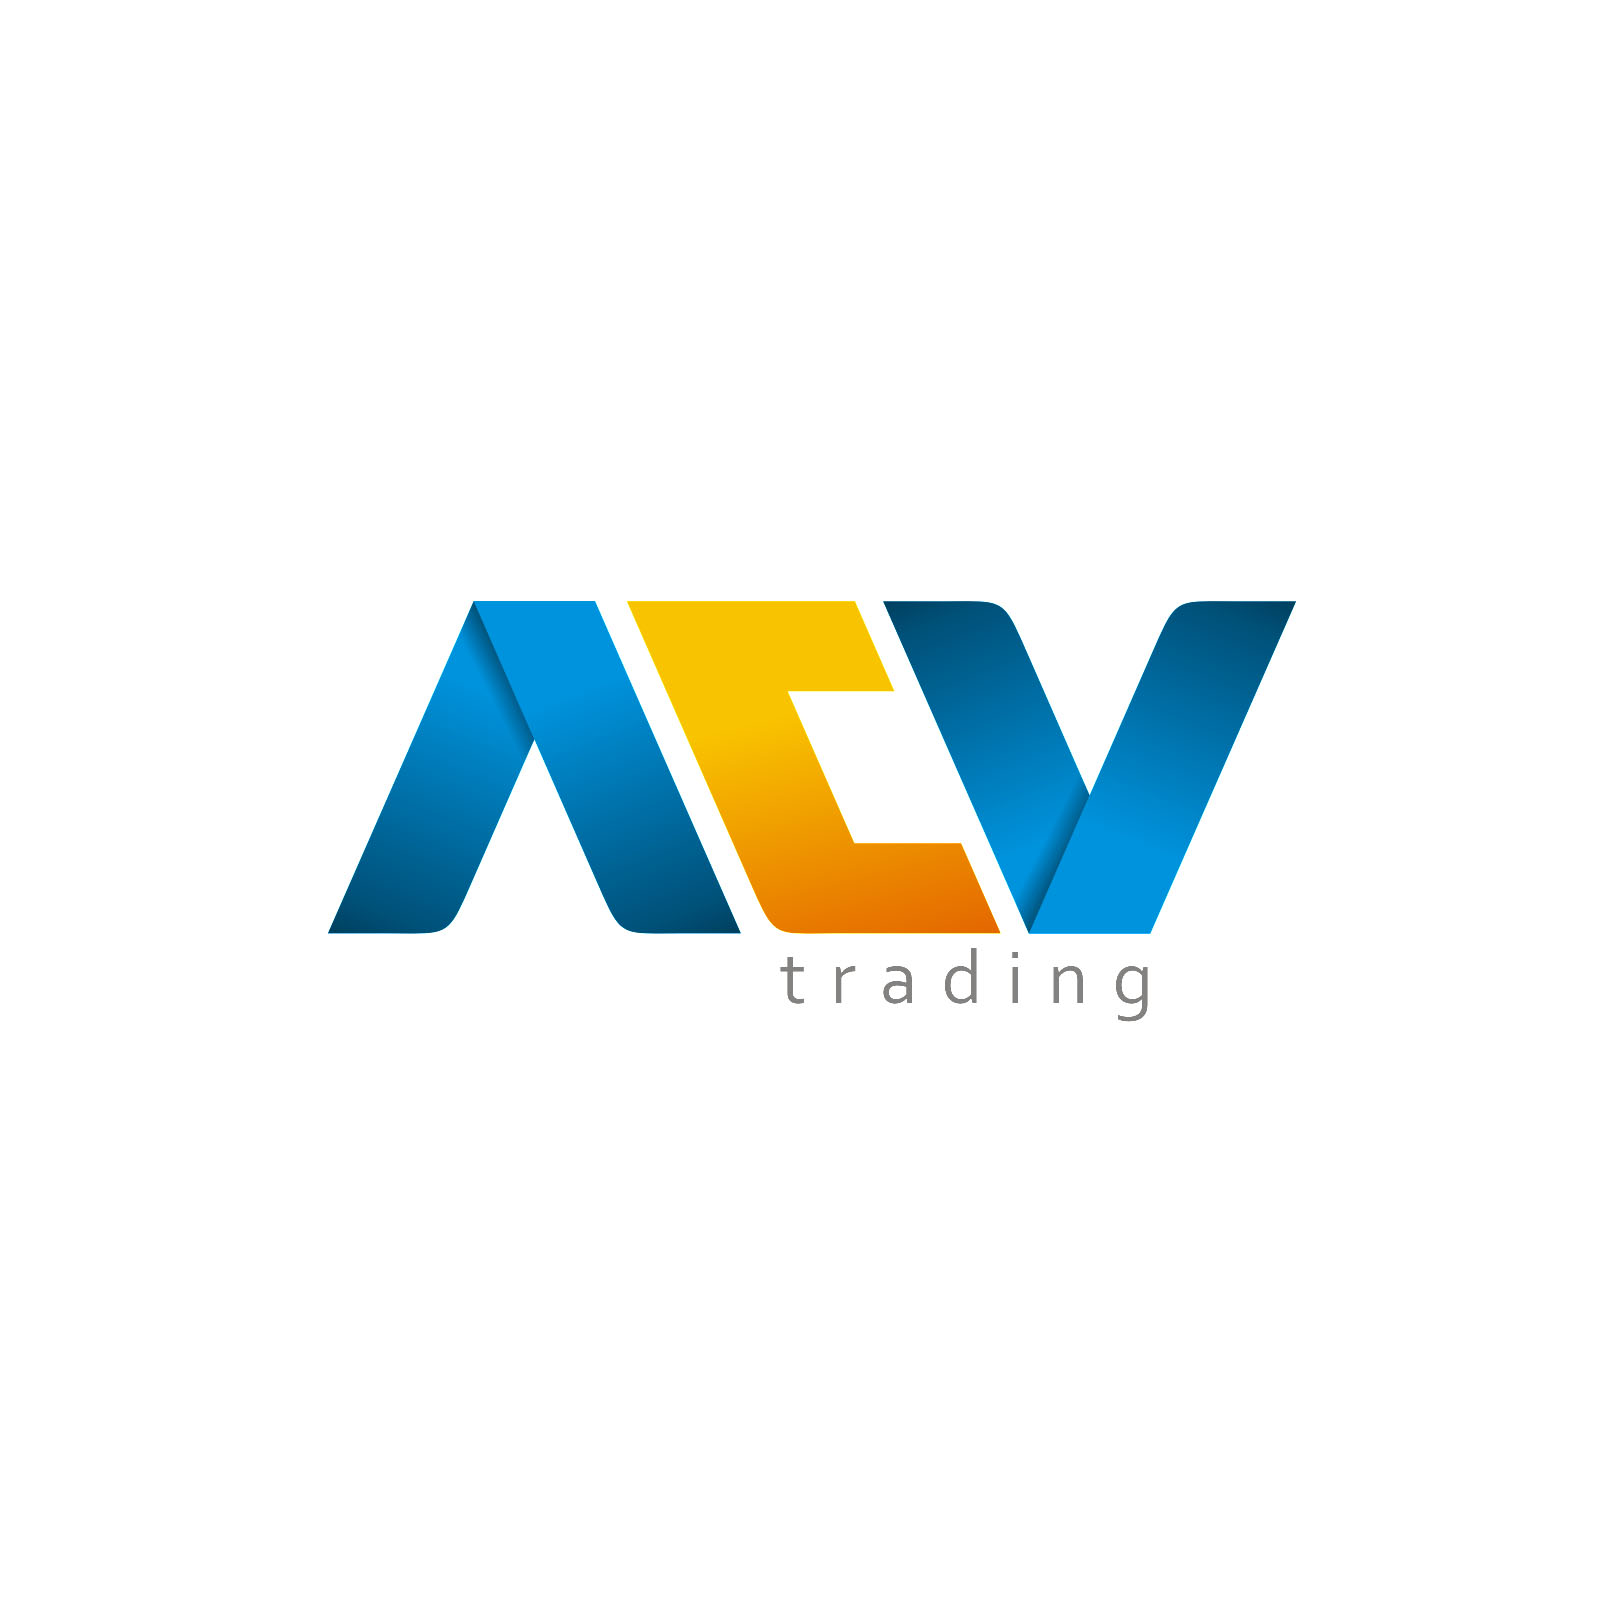 Logo Design by Private User - Entry No. 54 in the Logo Design Contest Fun Logo Design for ACV Trading.